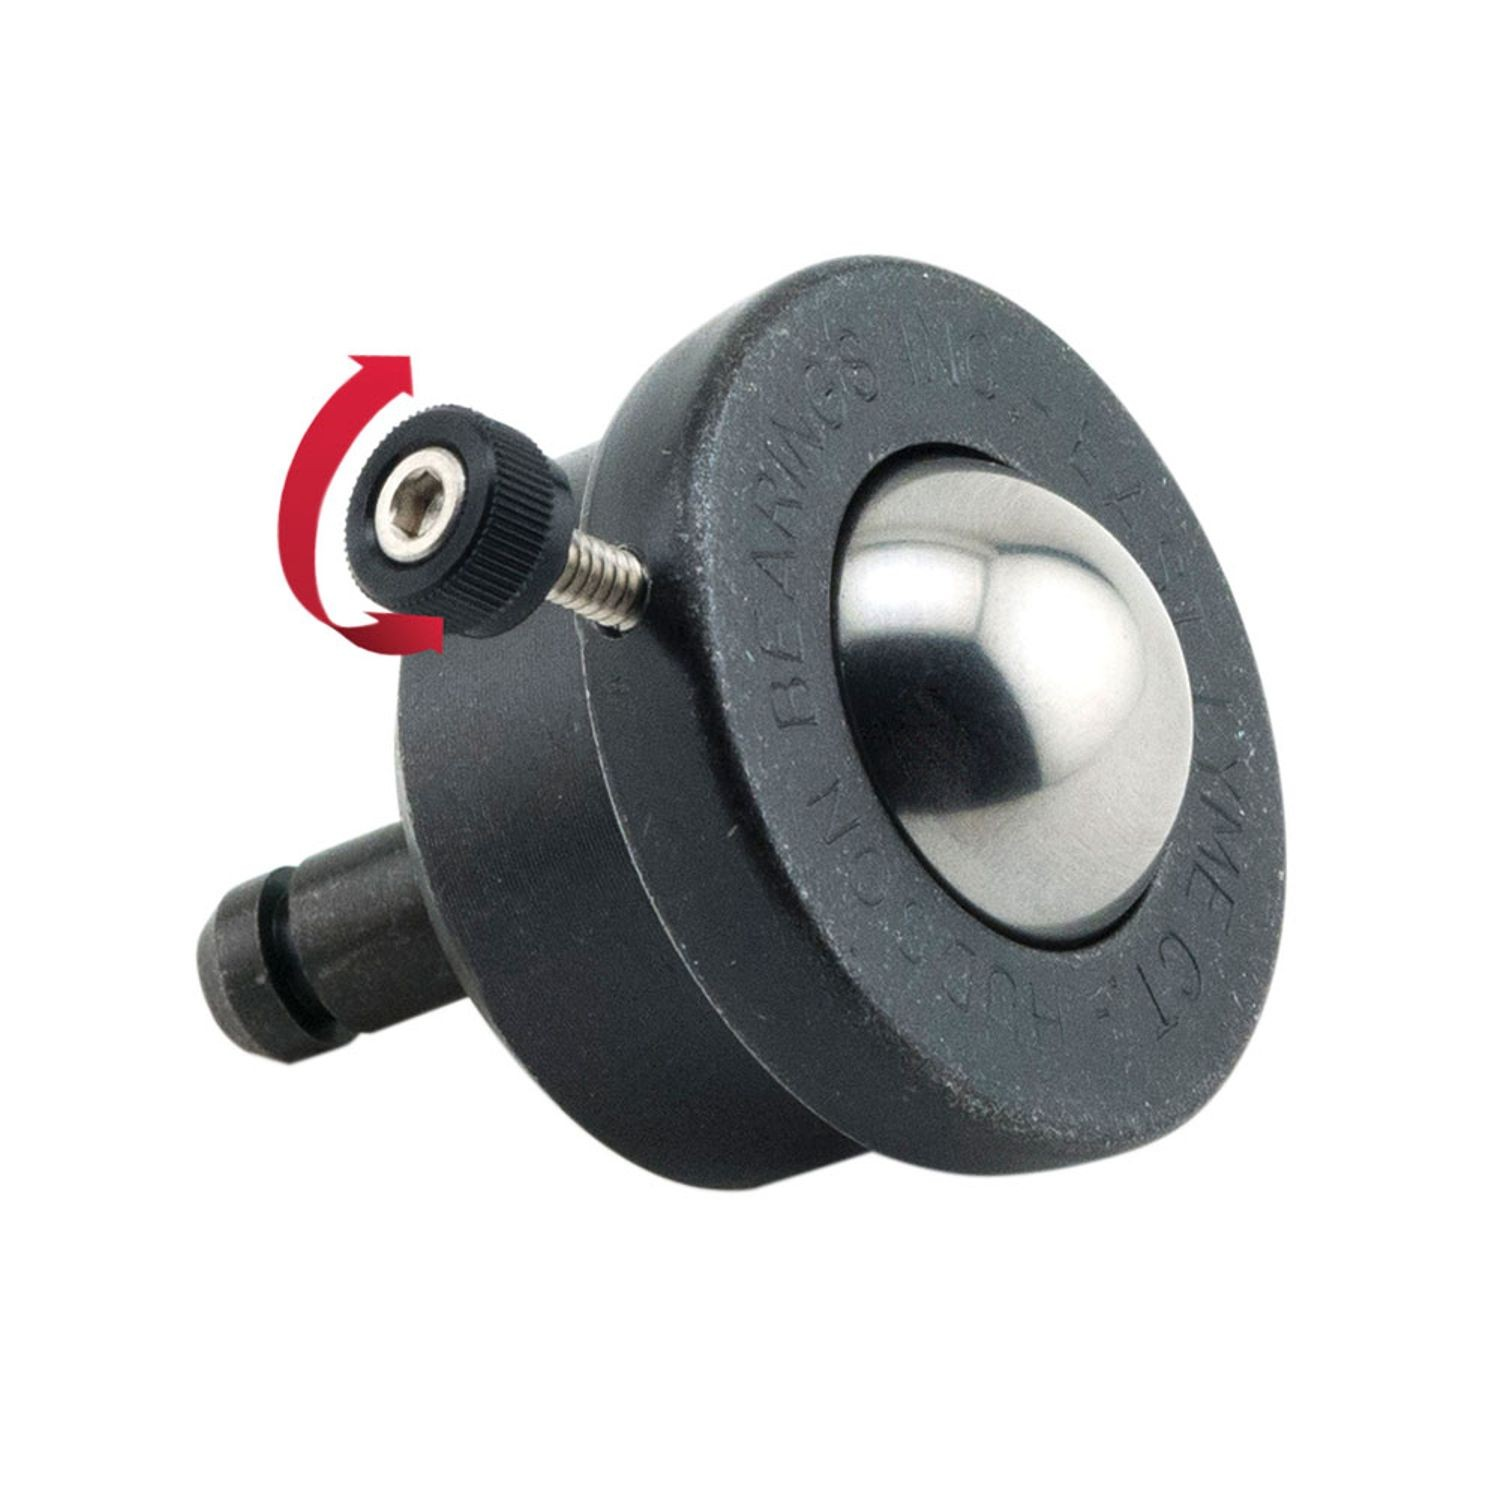 "1"" x 5/16-18 x 1"" Threaded Stem Steel Ball Caster with Brake"